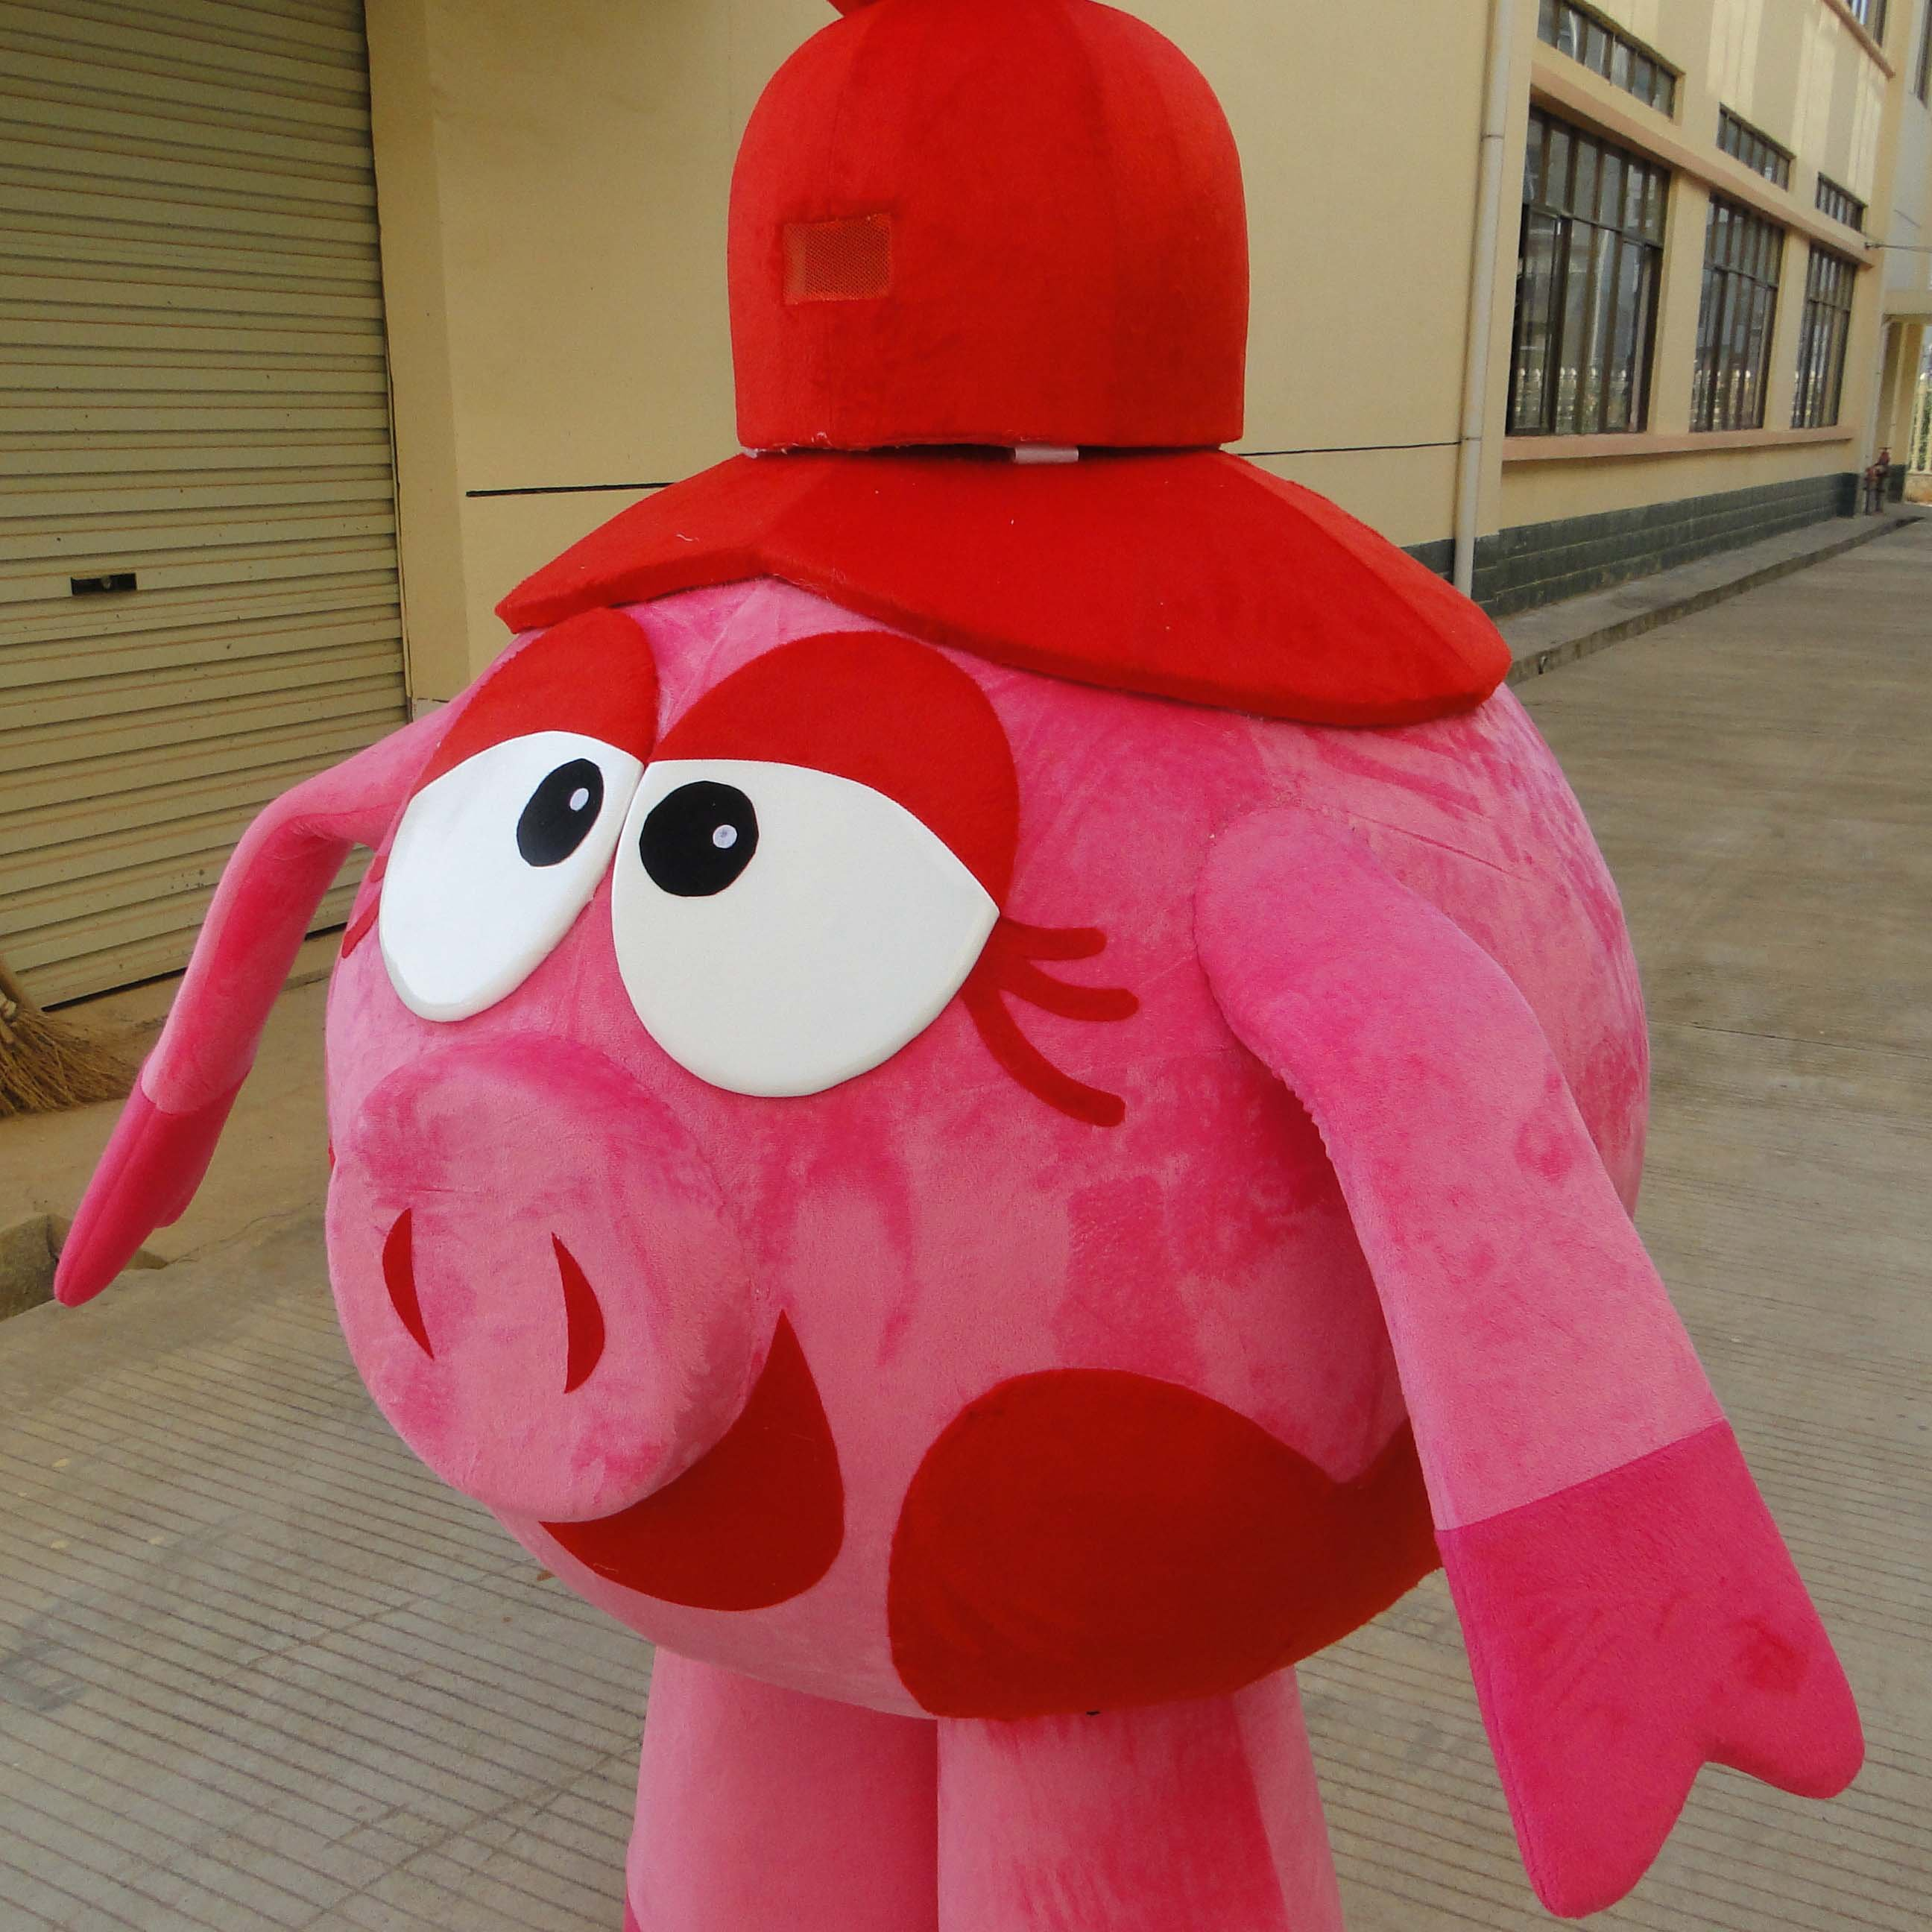 Cartoon Doll Clothing Pig Pink Pig Sister Doll Clothing Promotional Activities Props Cartoon Dress Clothes Mascot Costume